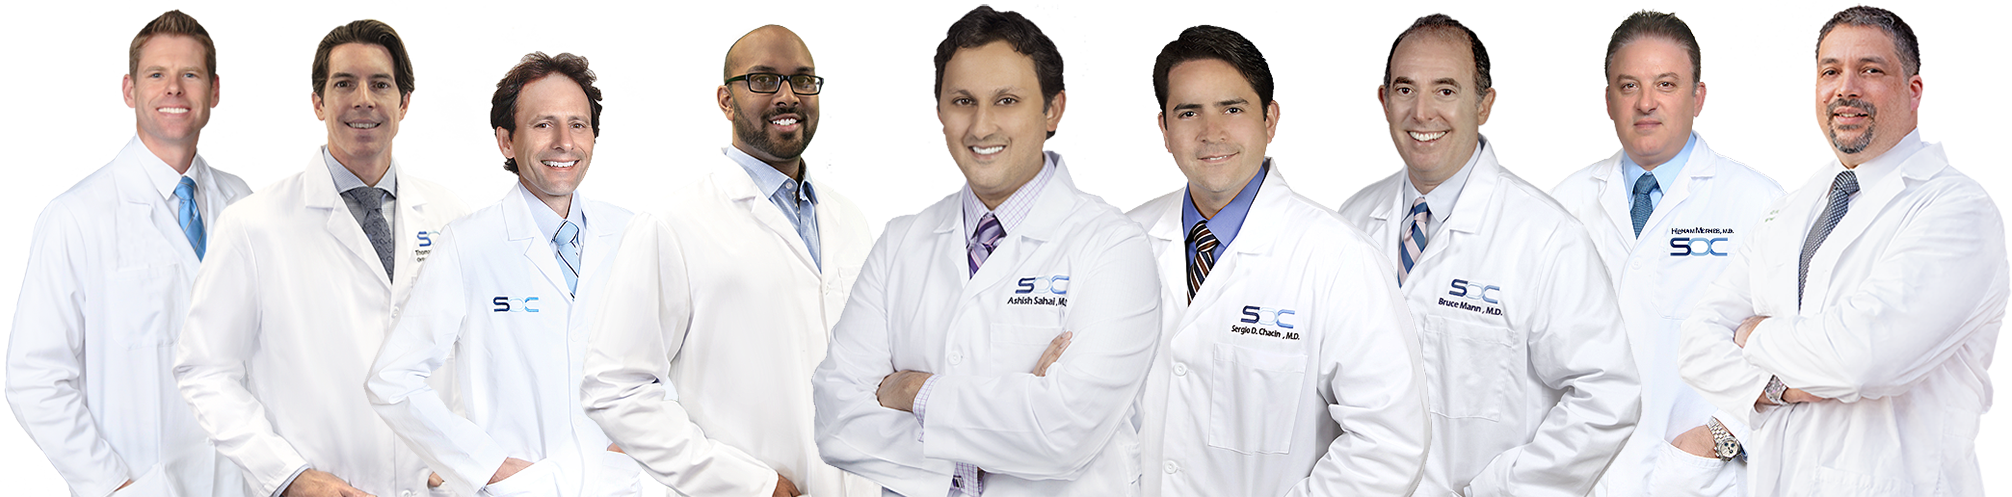 SOC orthopedic doctors in South Florida